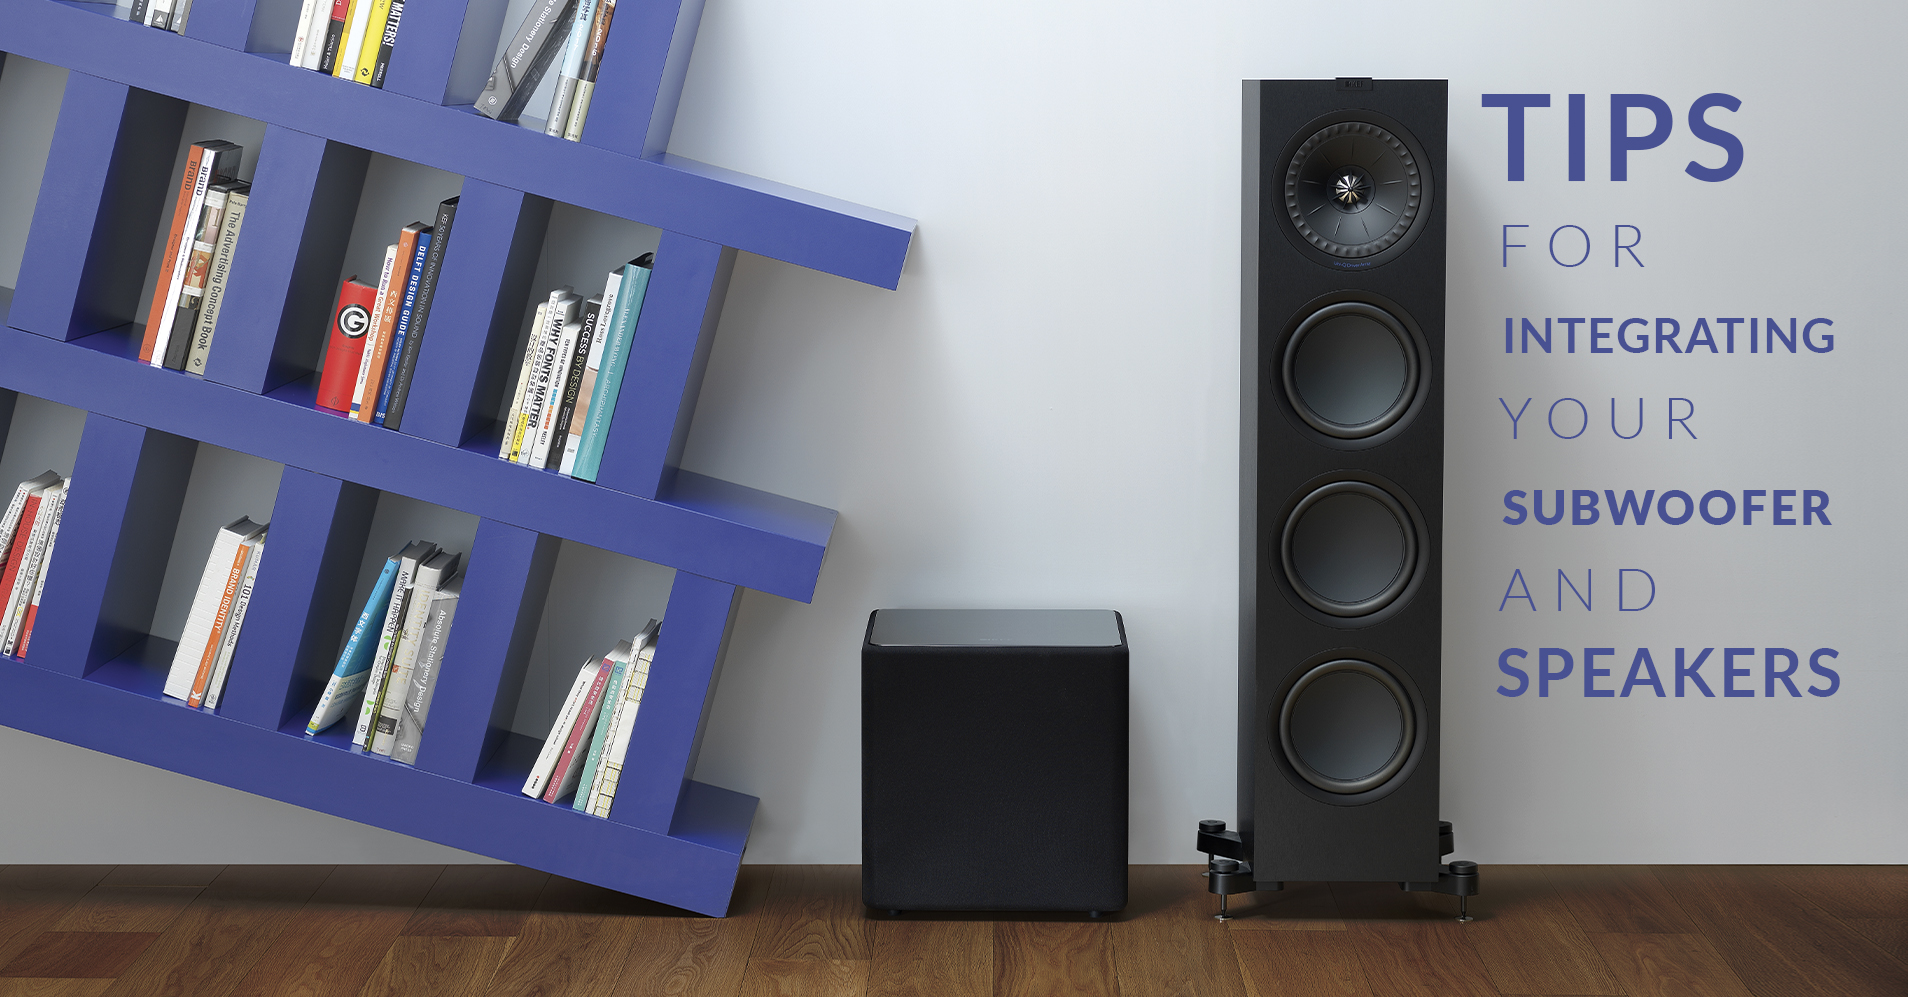 Integrating Your Subwoofer and Speakers